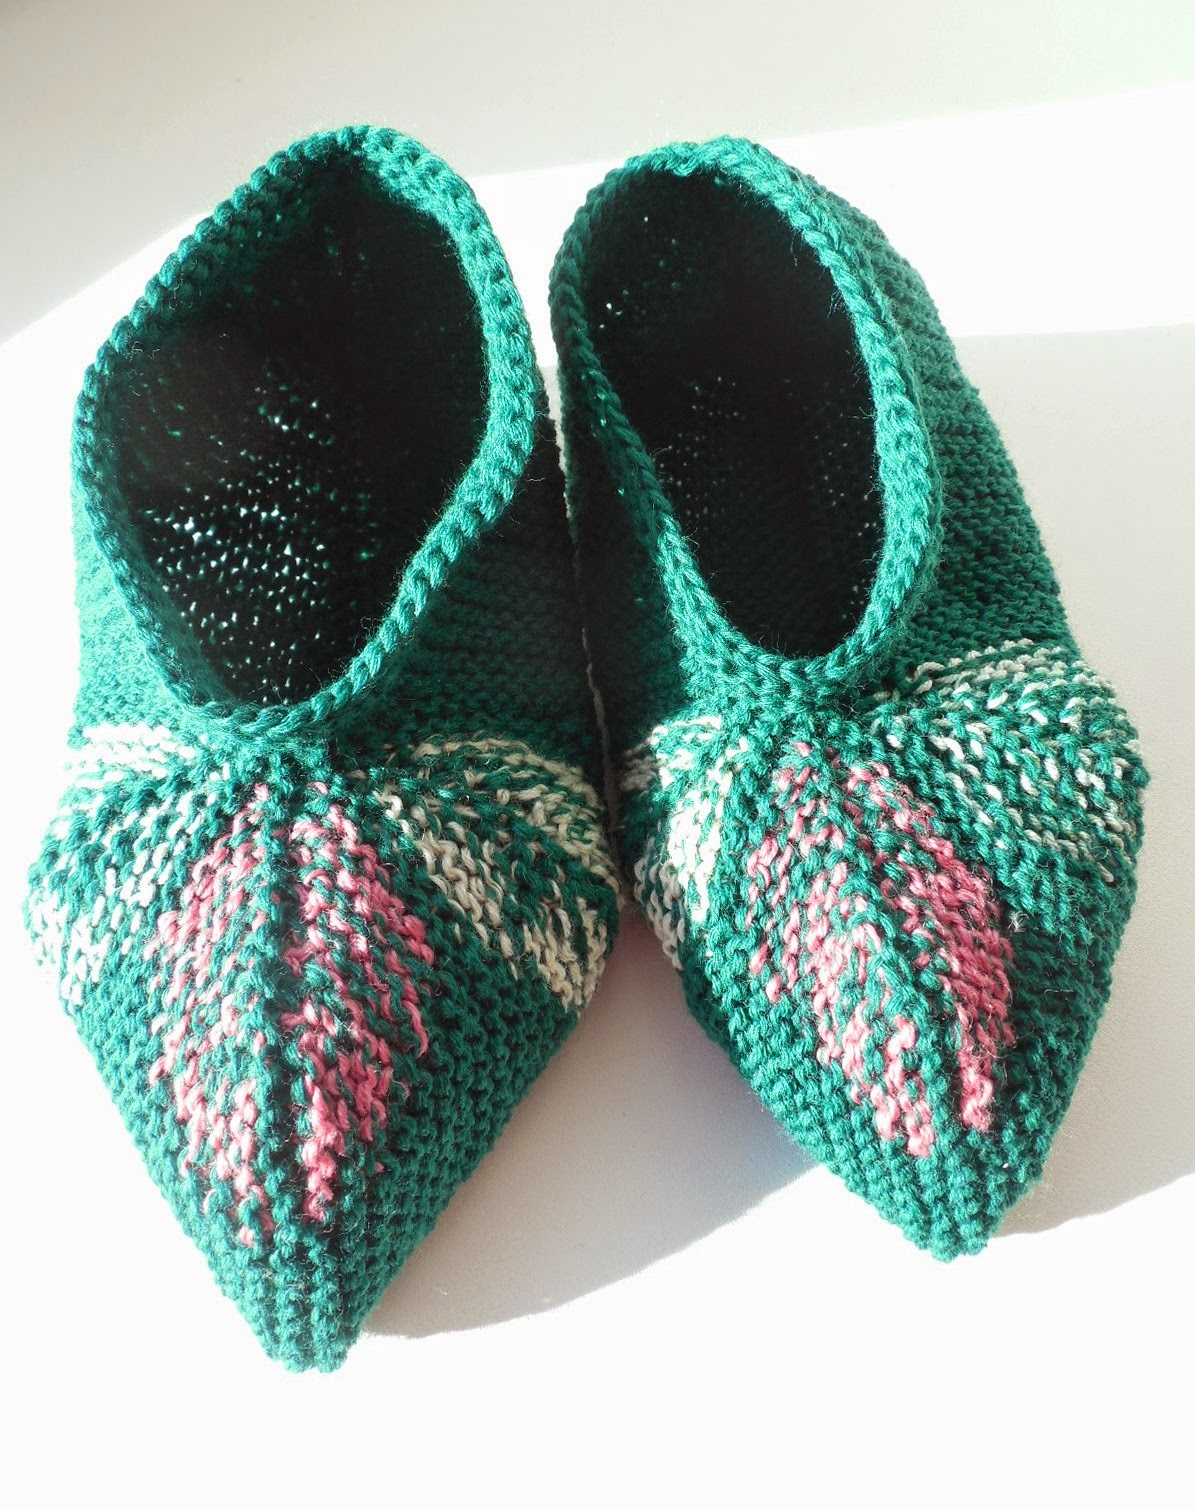 Socks Go Left: Three Leaves Knitted Slippers Pattern